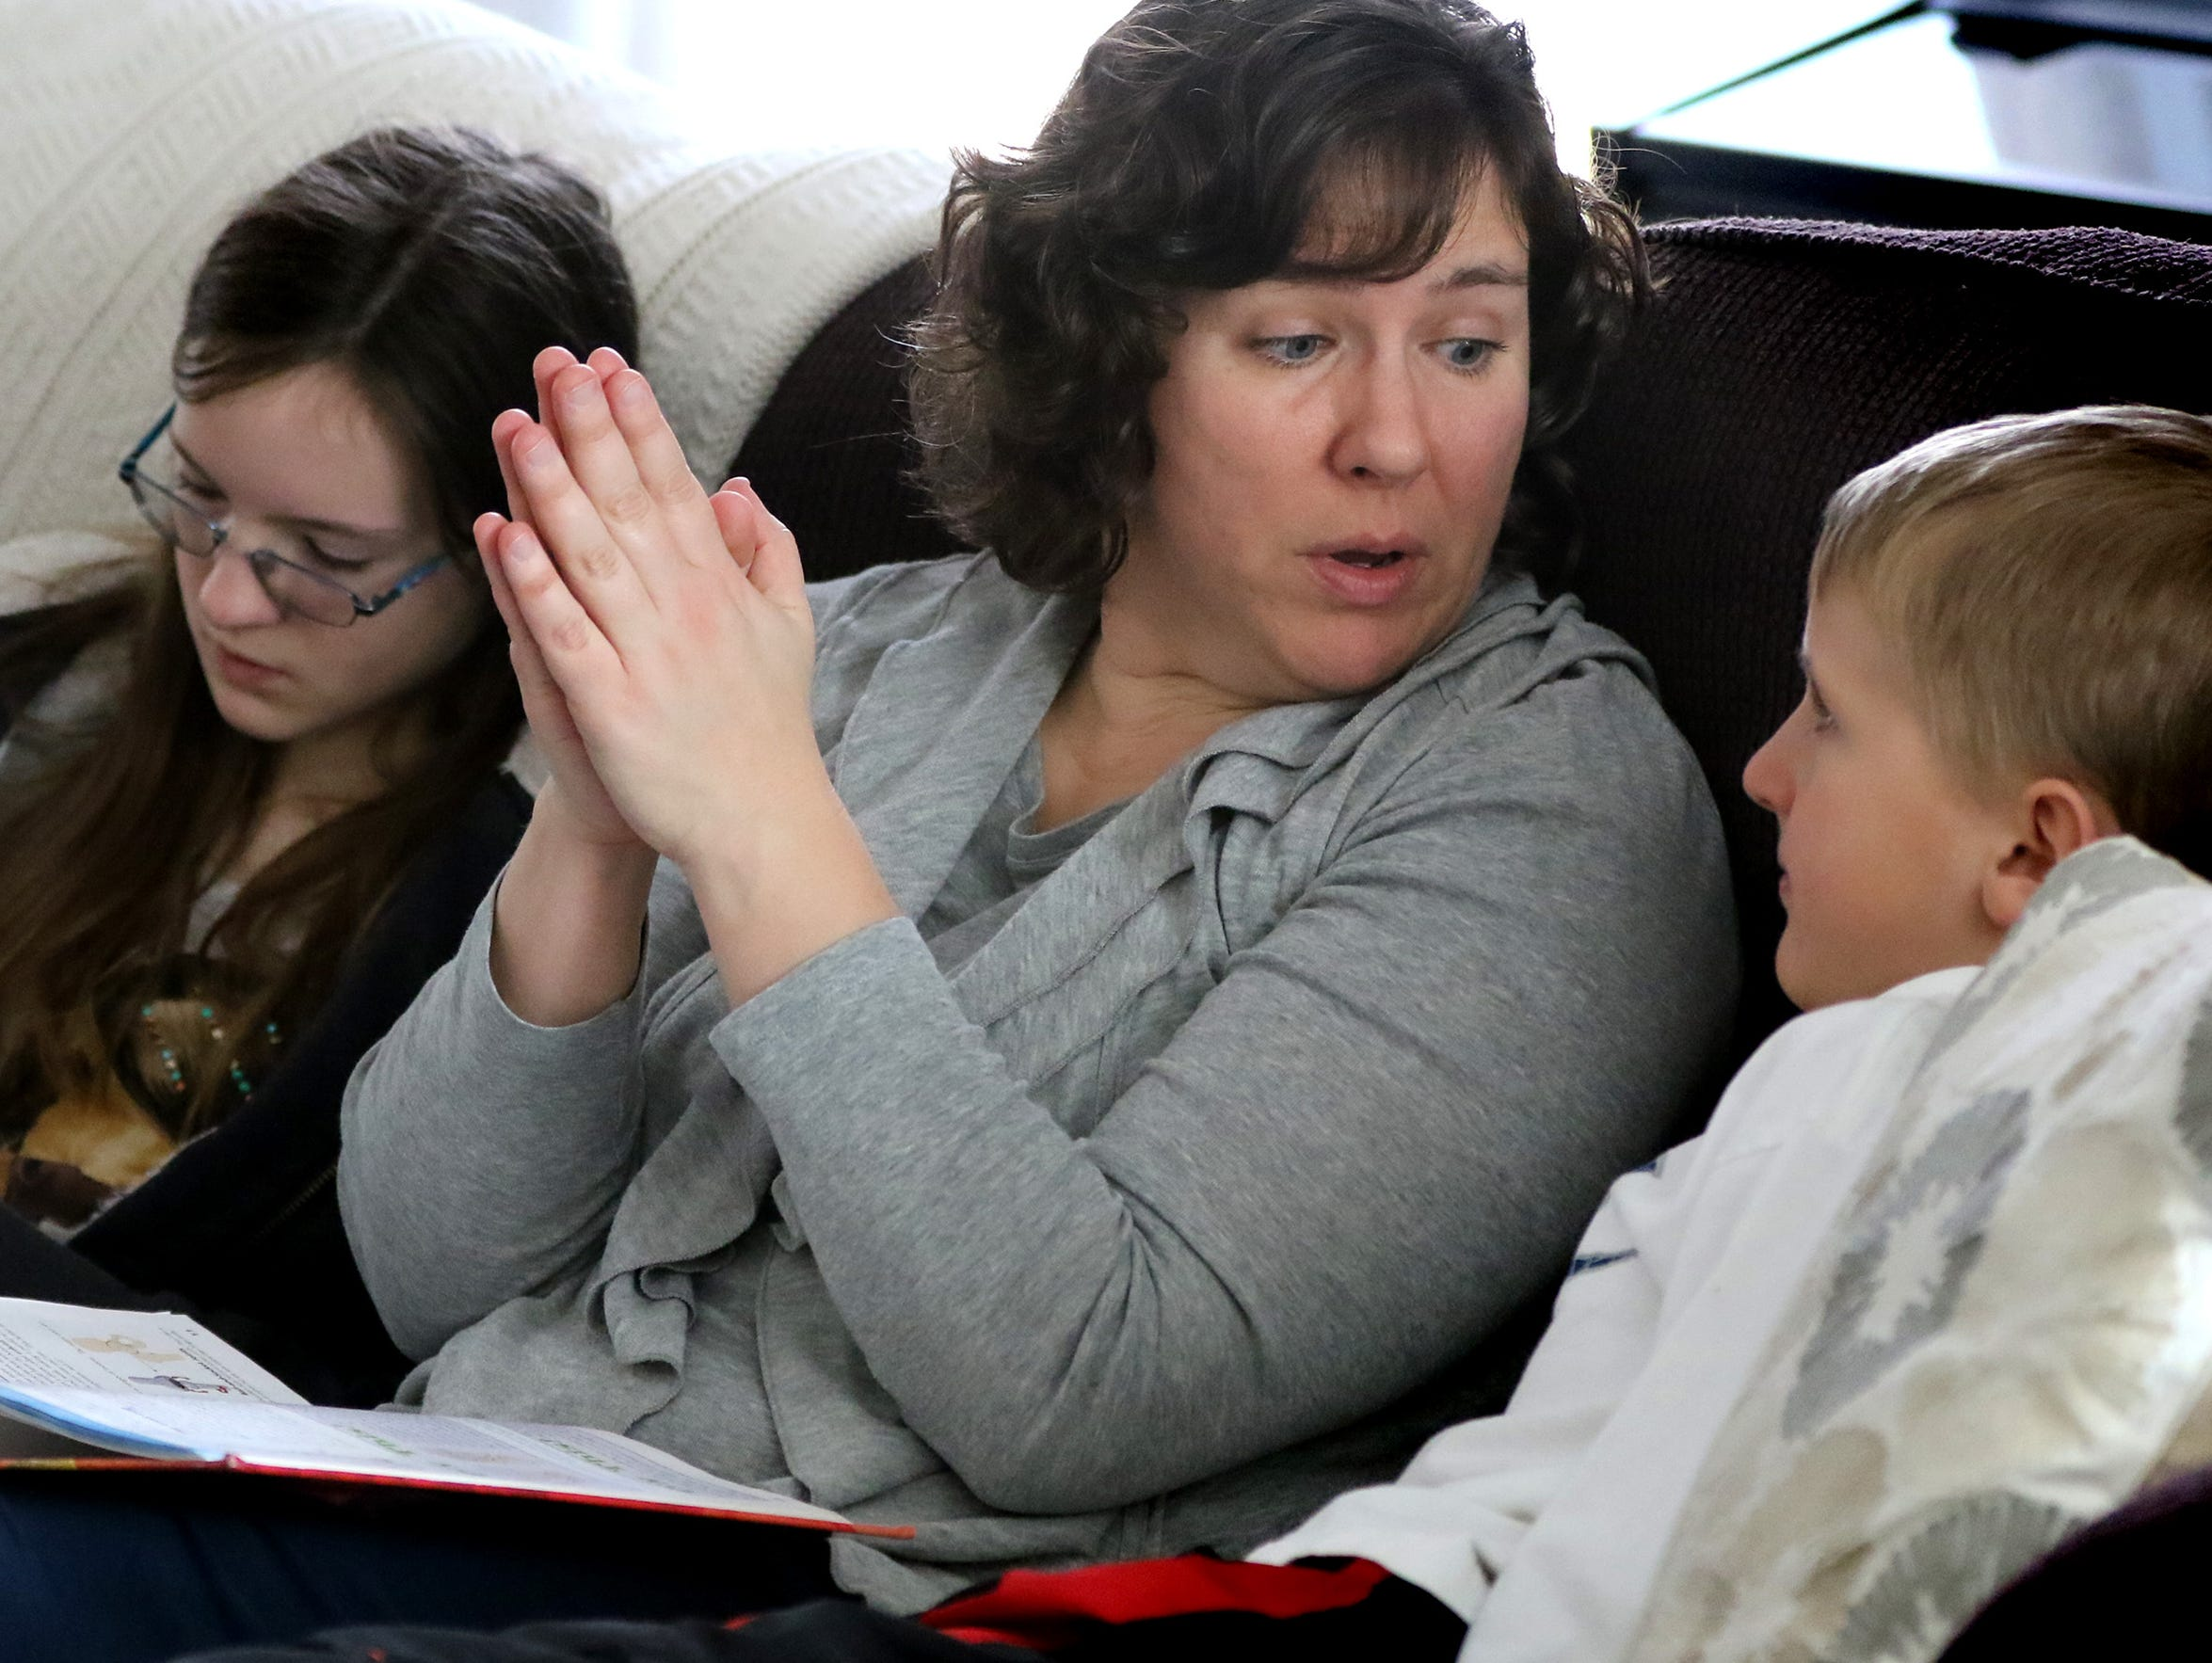 Colleen Boehm and her children Ellie, 12, and Nick, 9, gather on a living room couch to read through a section on bone structure and joints for a unit on human anatomy at their Sussex home on March 28.